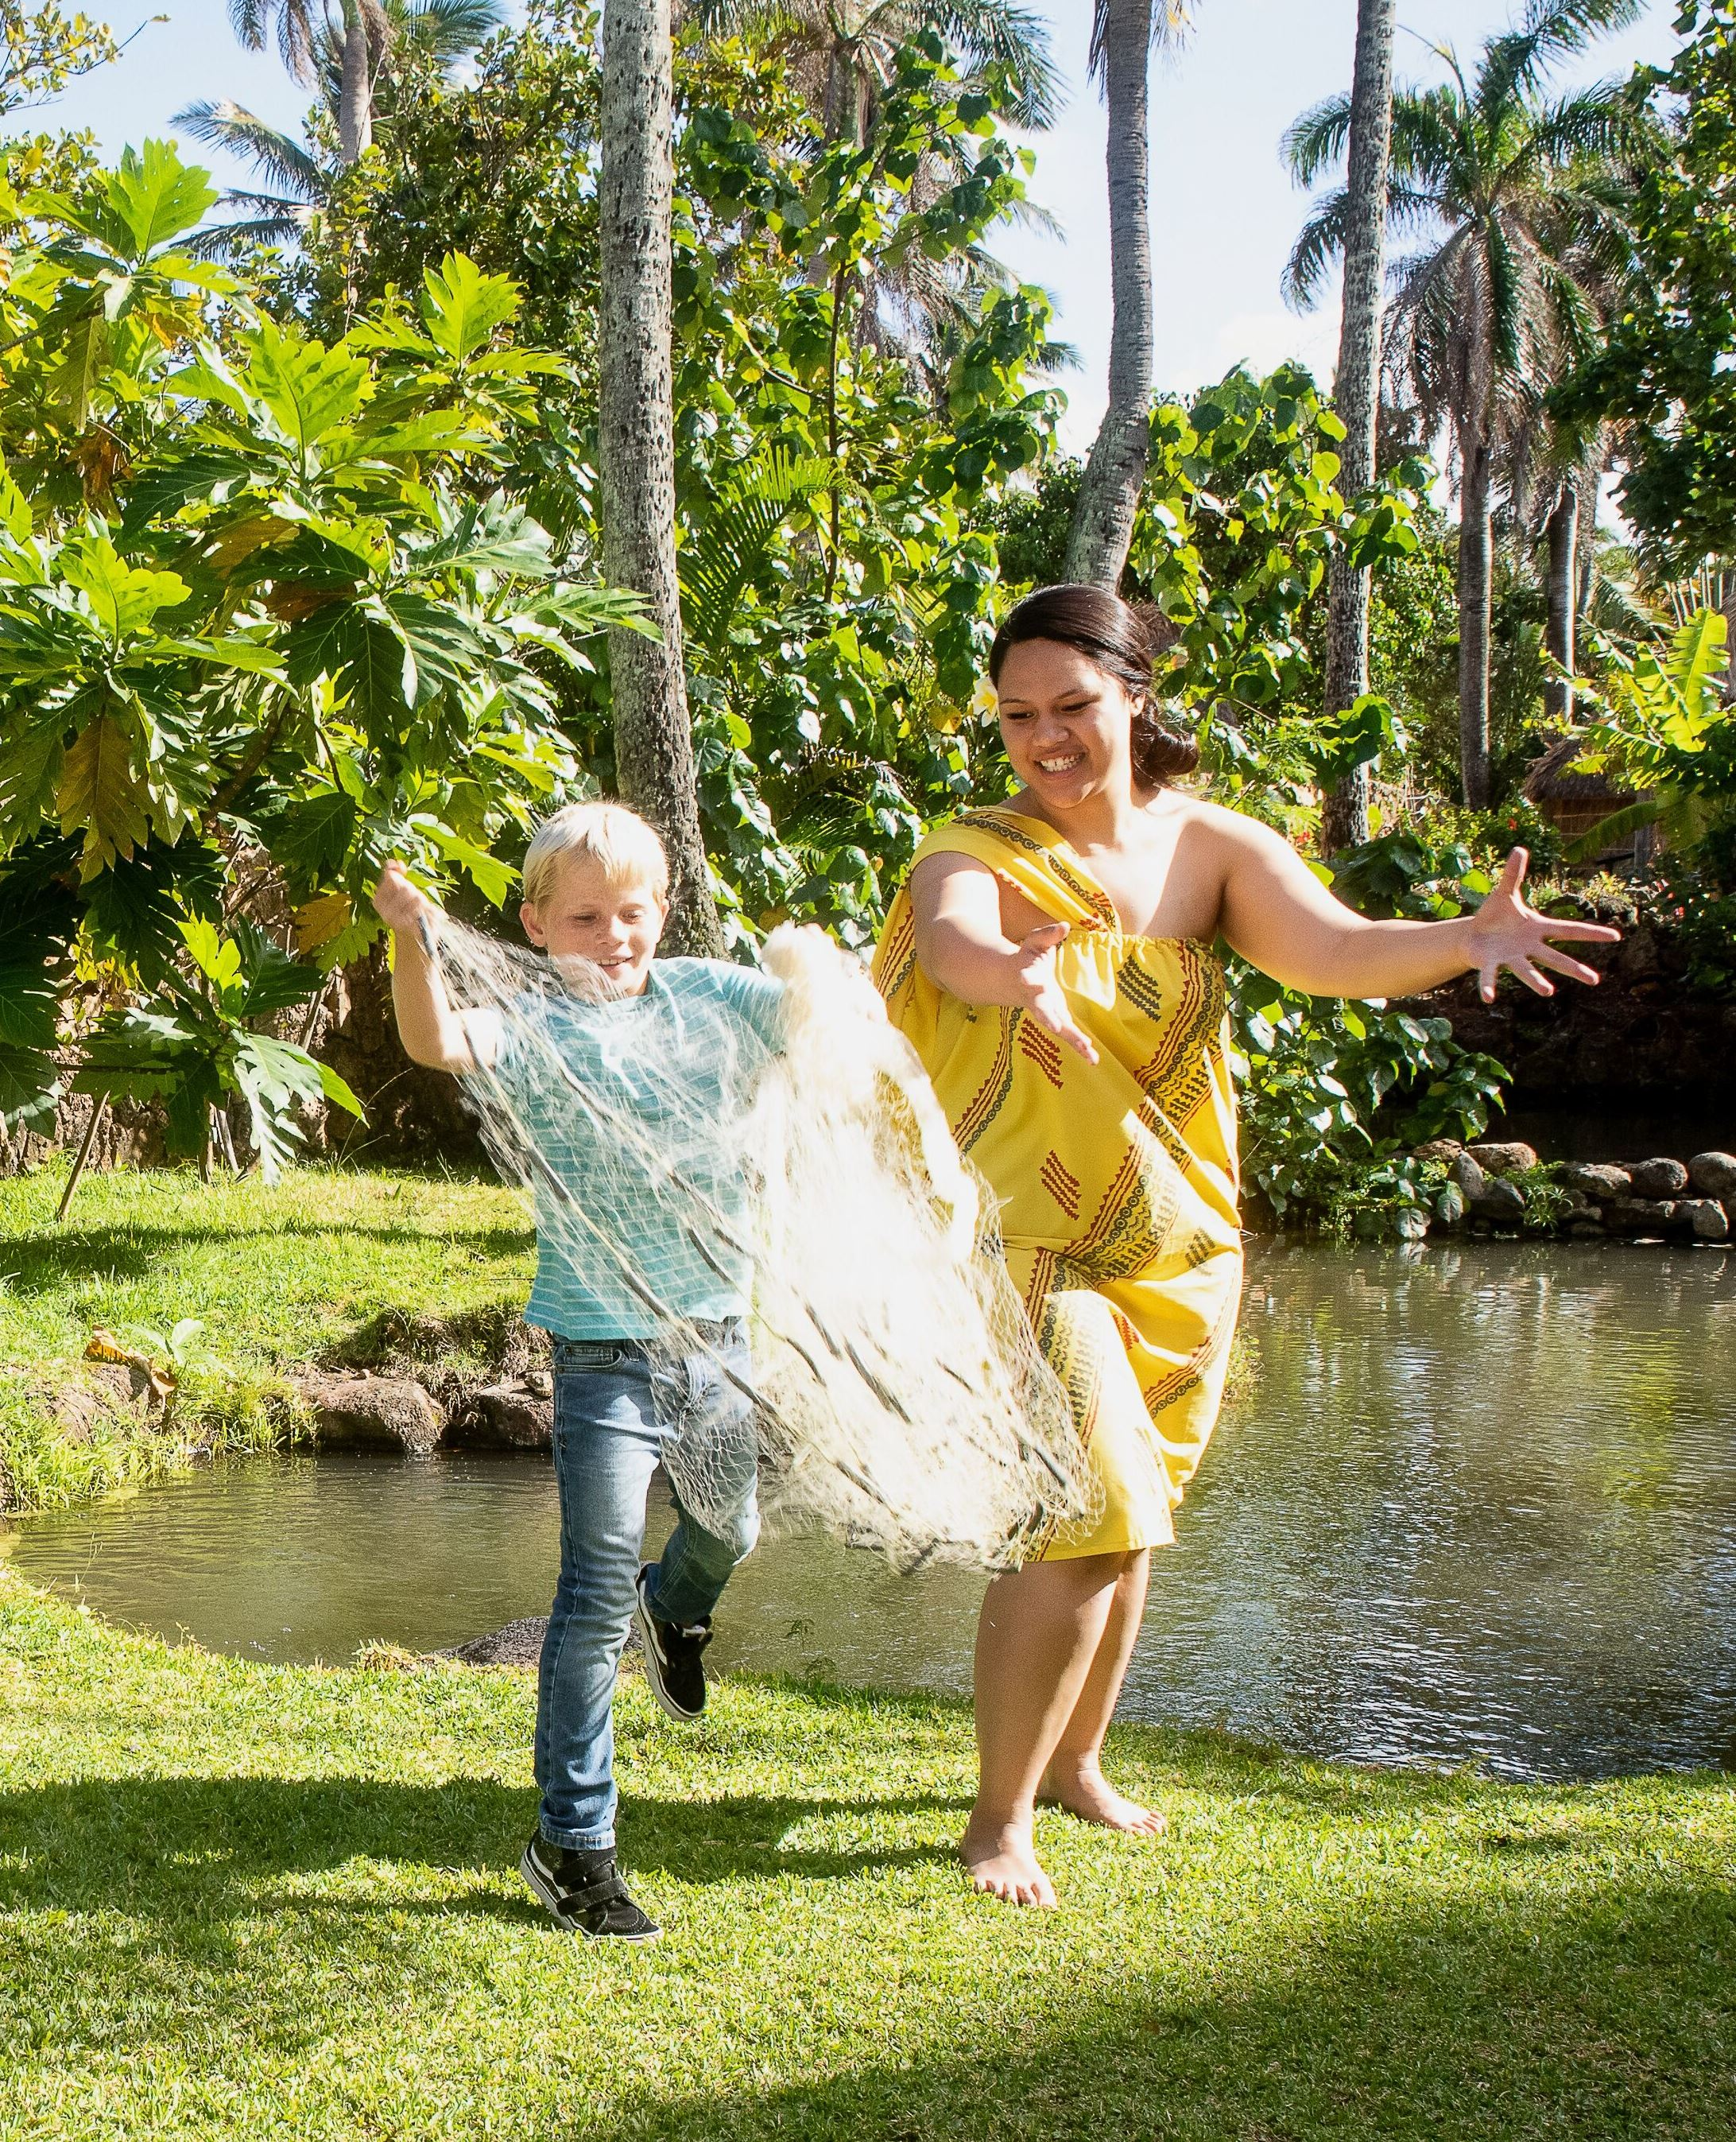 Picture of boy tossing a fishing net in the Hawaiian Village at the Polynesian Cultural Center